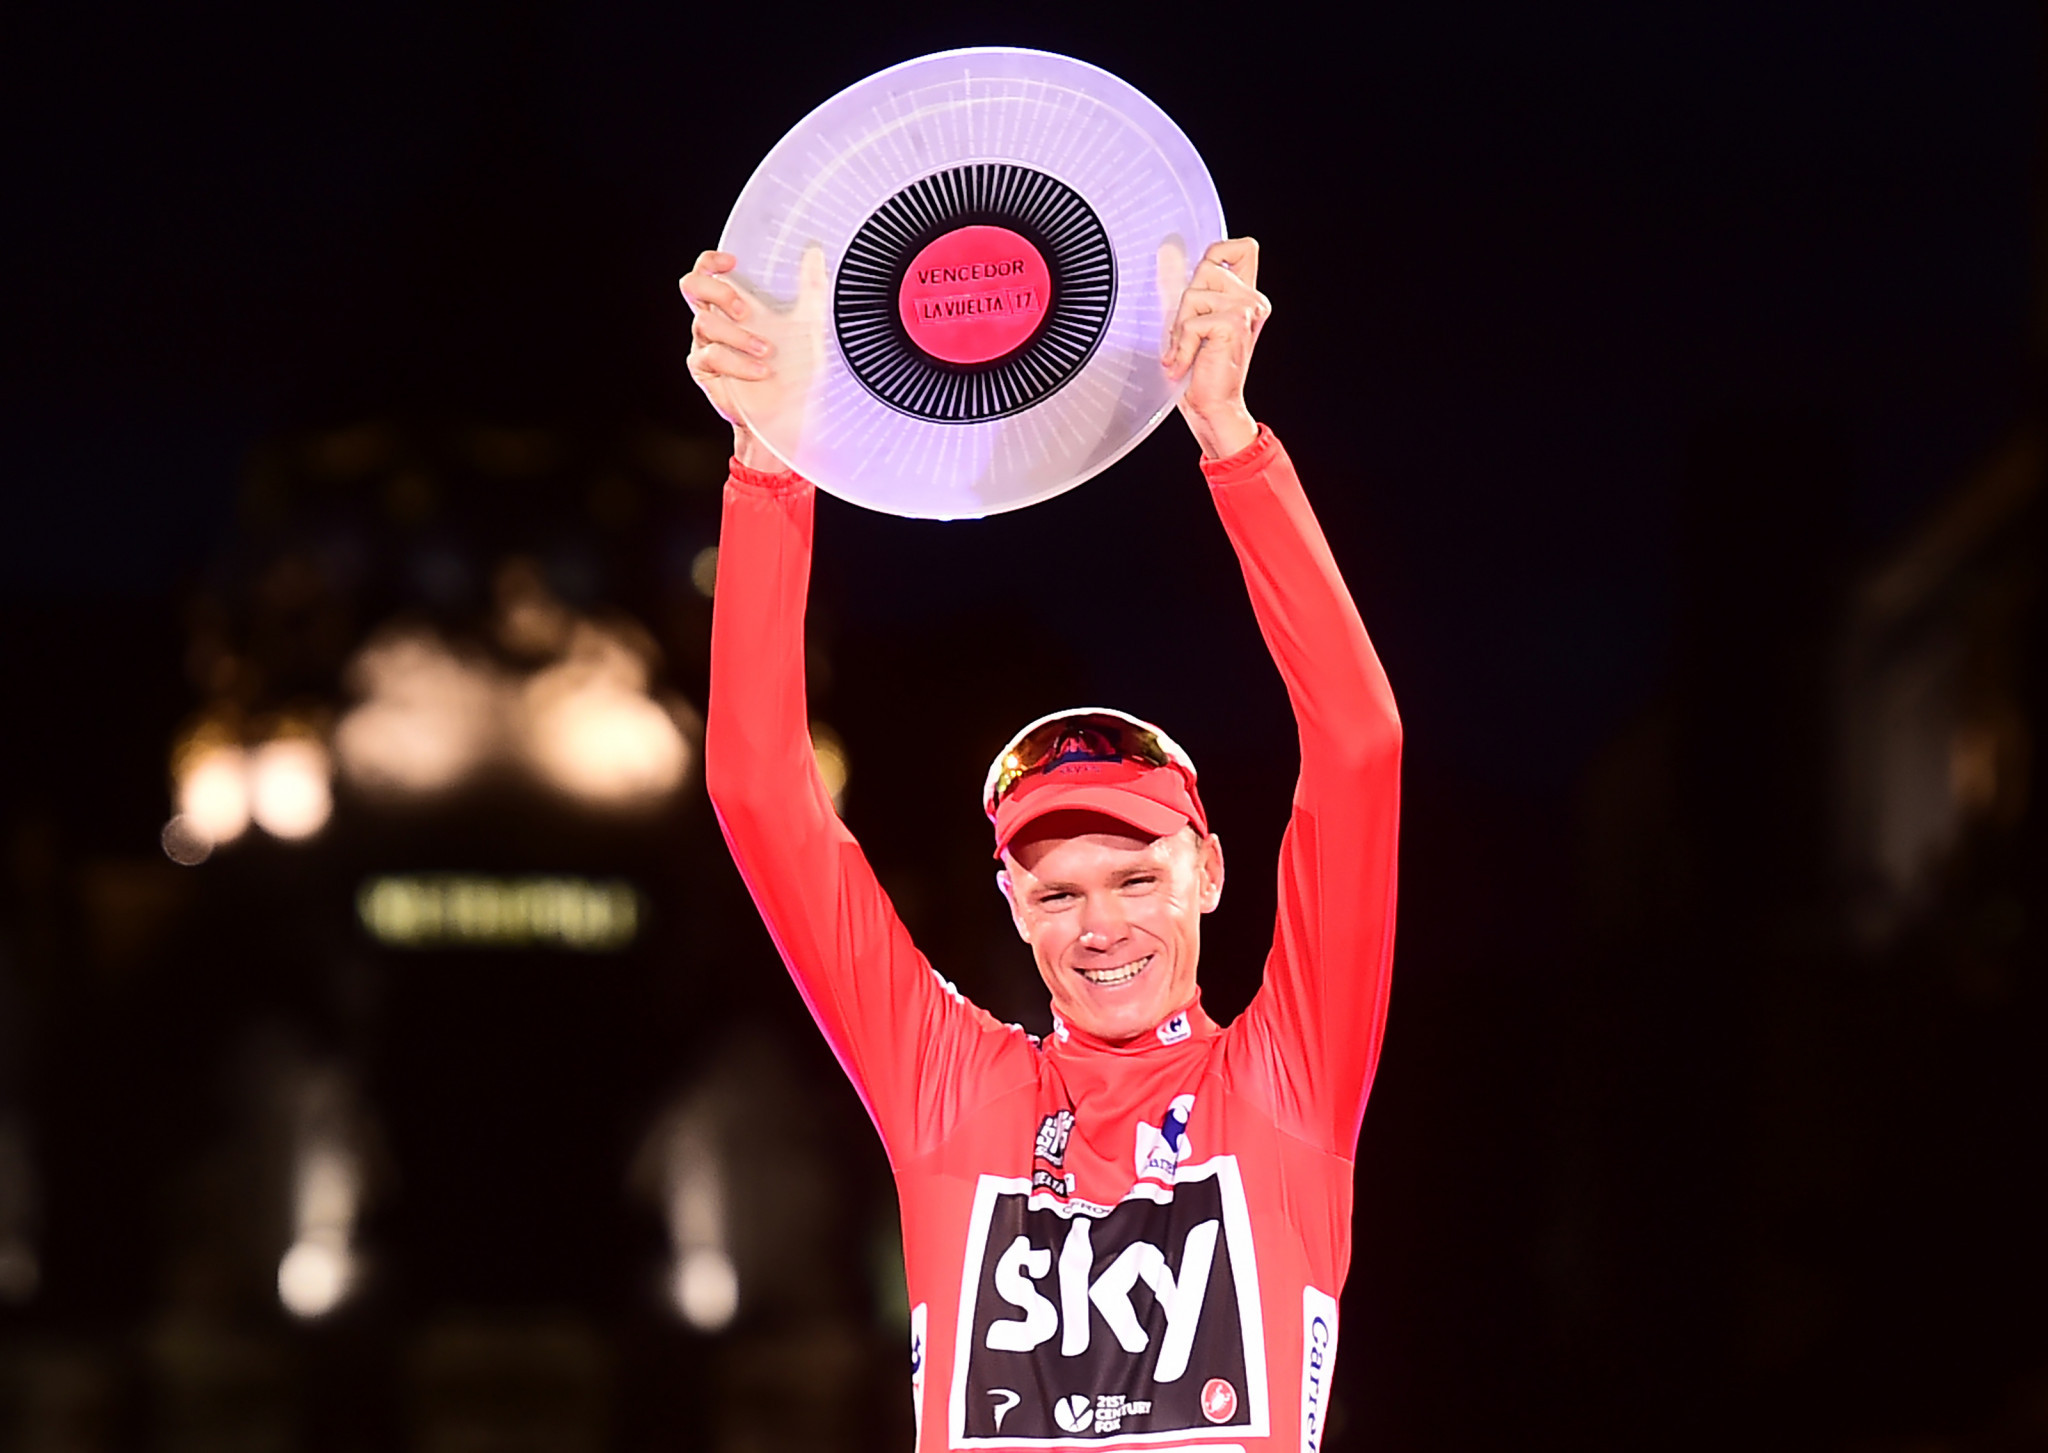 Chris Froome's win at the Vuelta has been tarnished by a failed drugs test, although he denies wrongdoing ©Getty Images